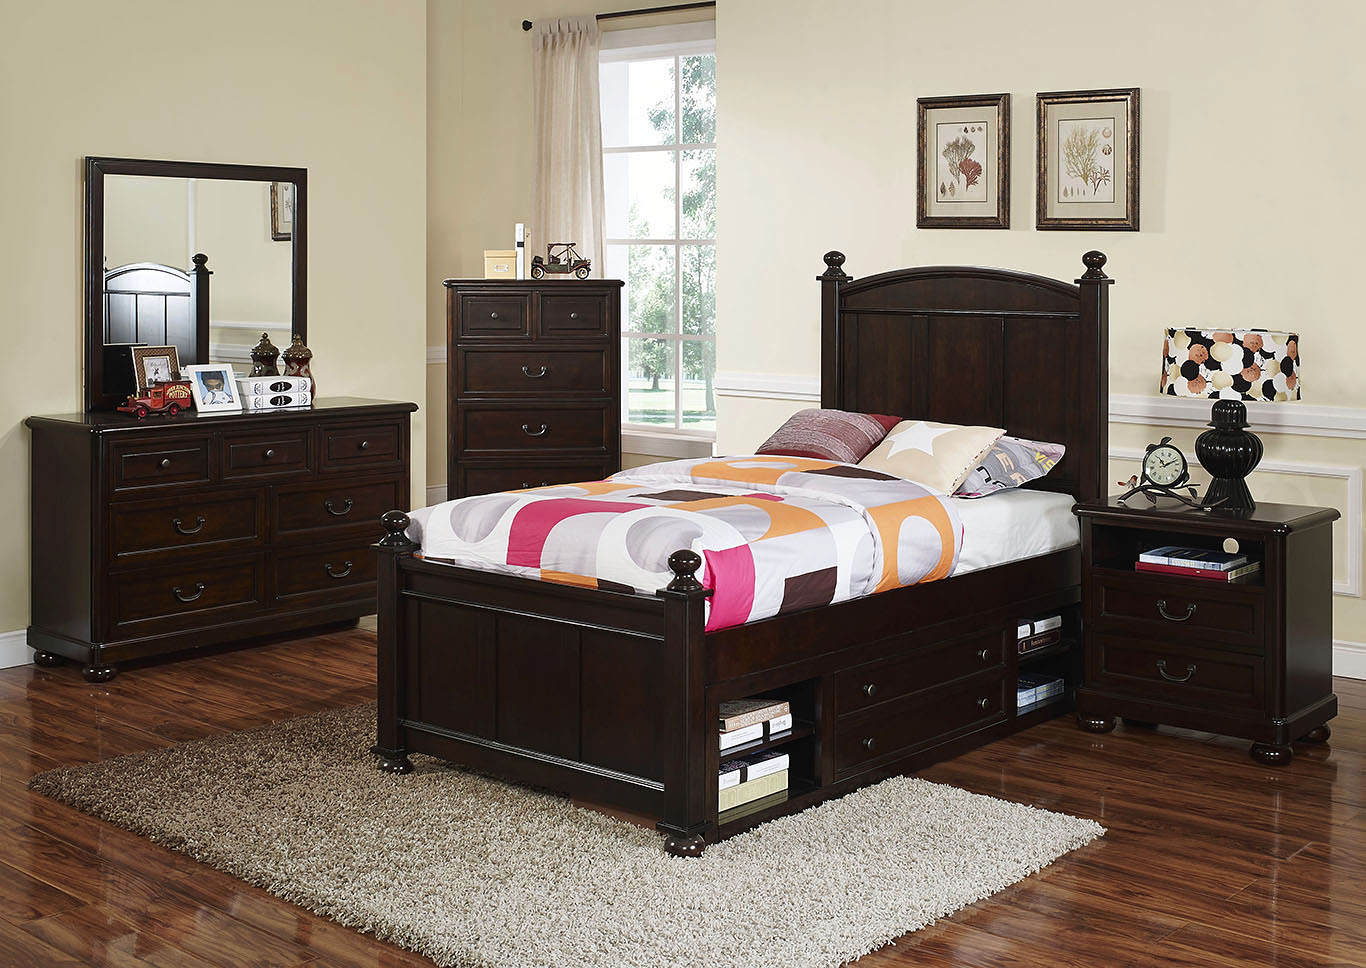 Excellent Kirk Imports Canyon Ridge Chestnut Full Panel Bed W Dresser Ncnpc Chair Design For Home Ncnpcorg